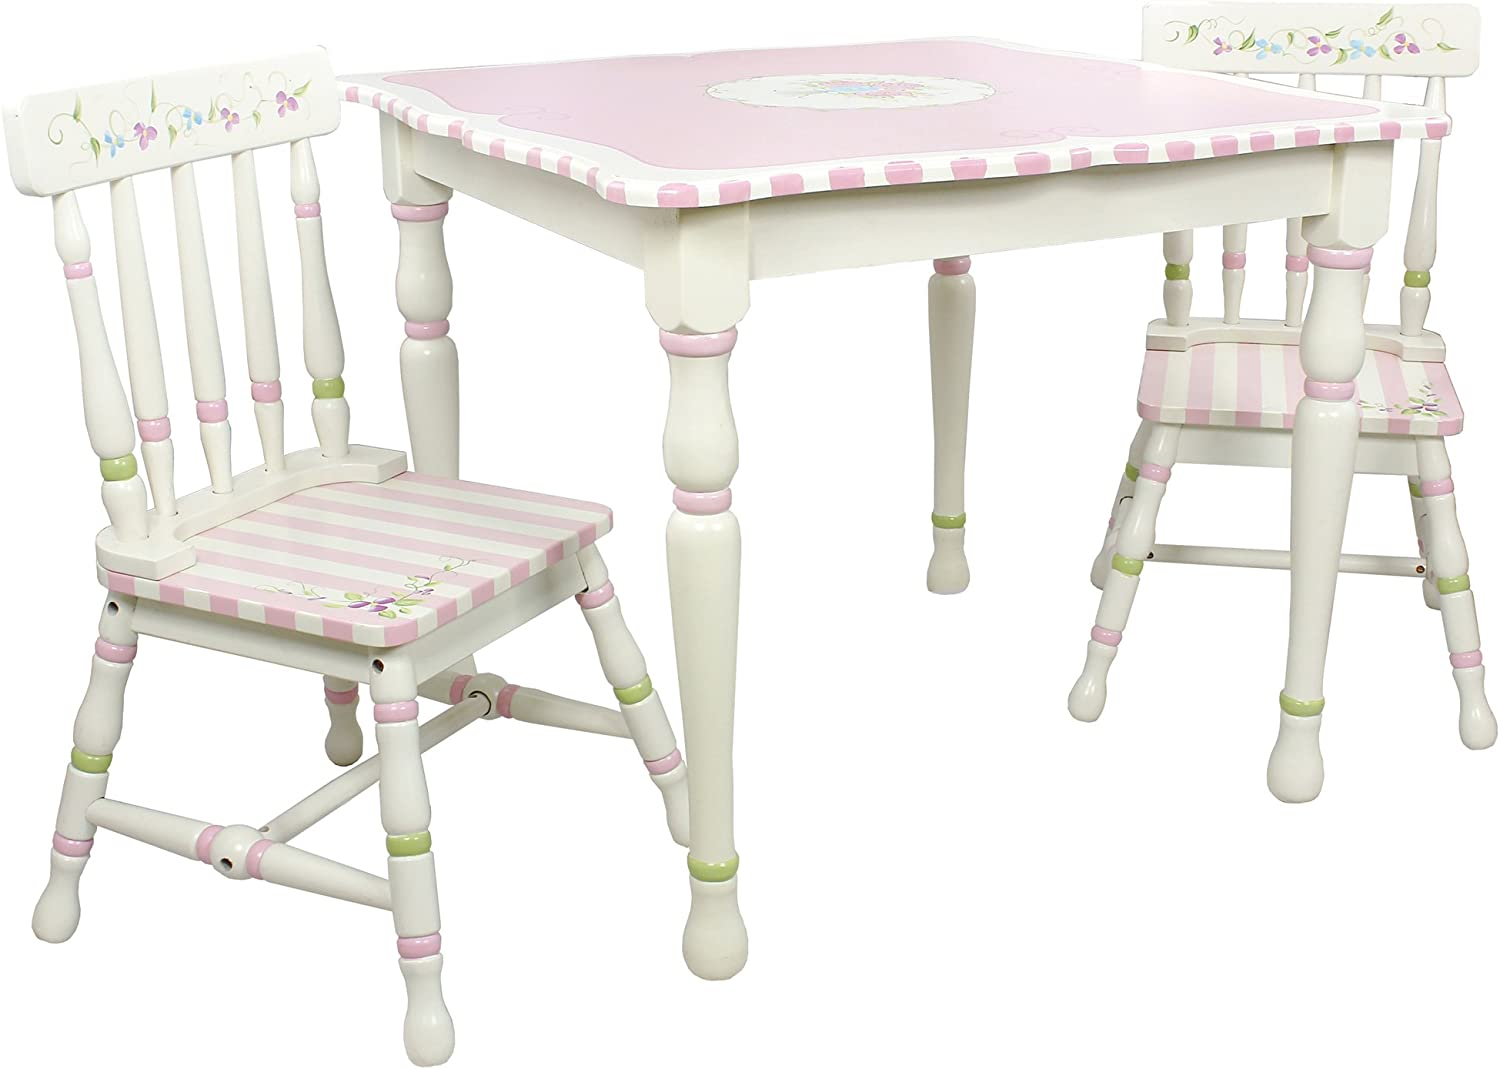 B0056GKDCS Fantasy Fields - Bouquet Thematic Hand Crafted Kids Wooden Table and 2 Chairs Set  Imagination Inspiring Hand Crafted & Hand Painted Details Non-Toxic, Lead Free Water-based Paint 712RHHkYwYL